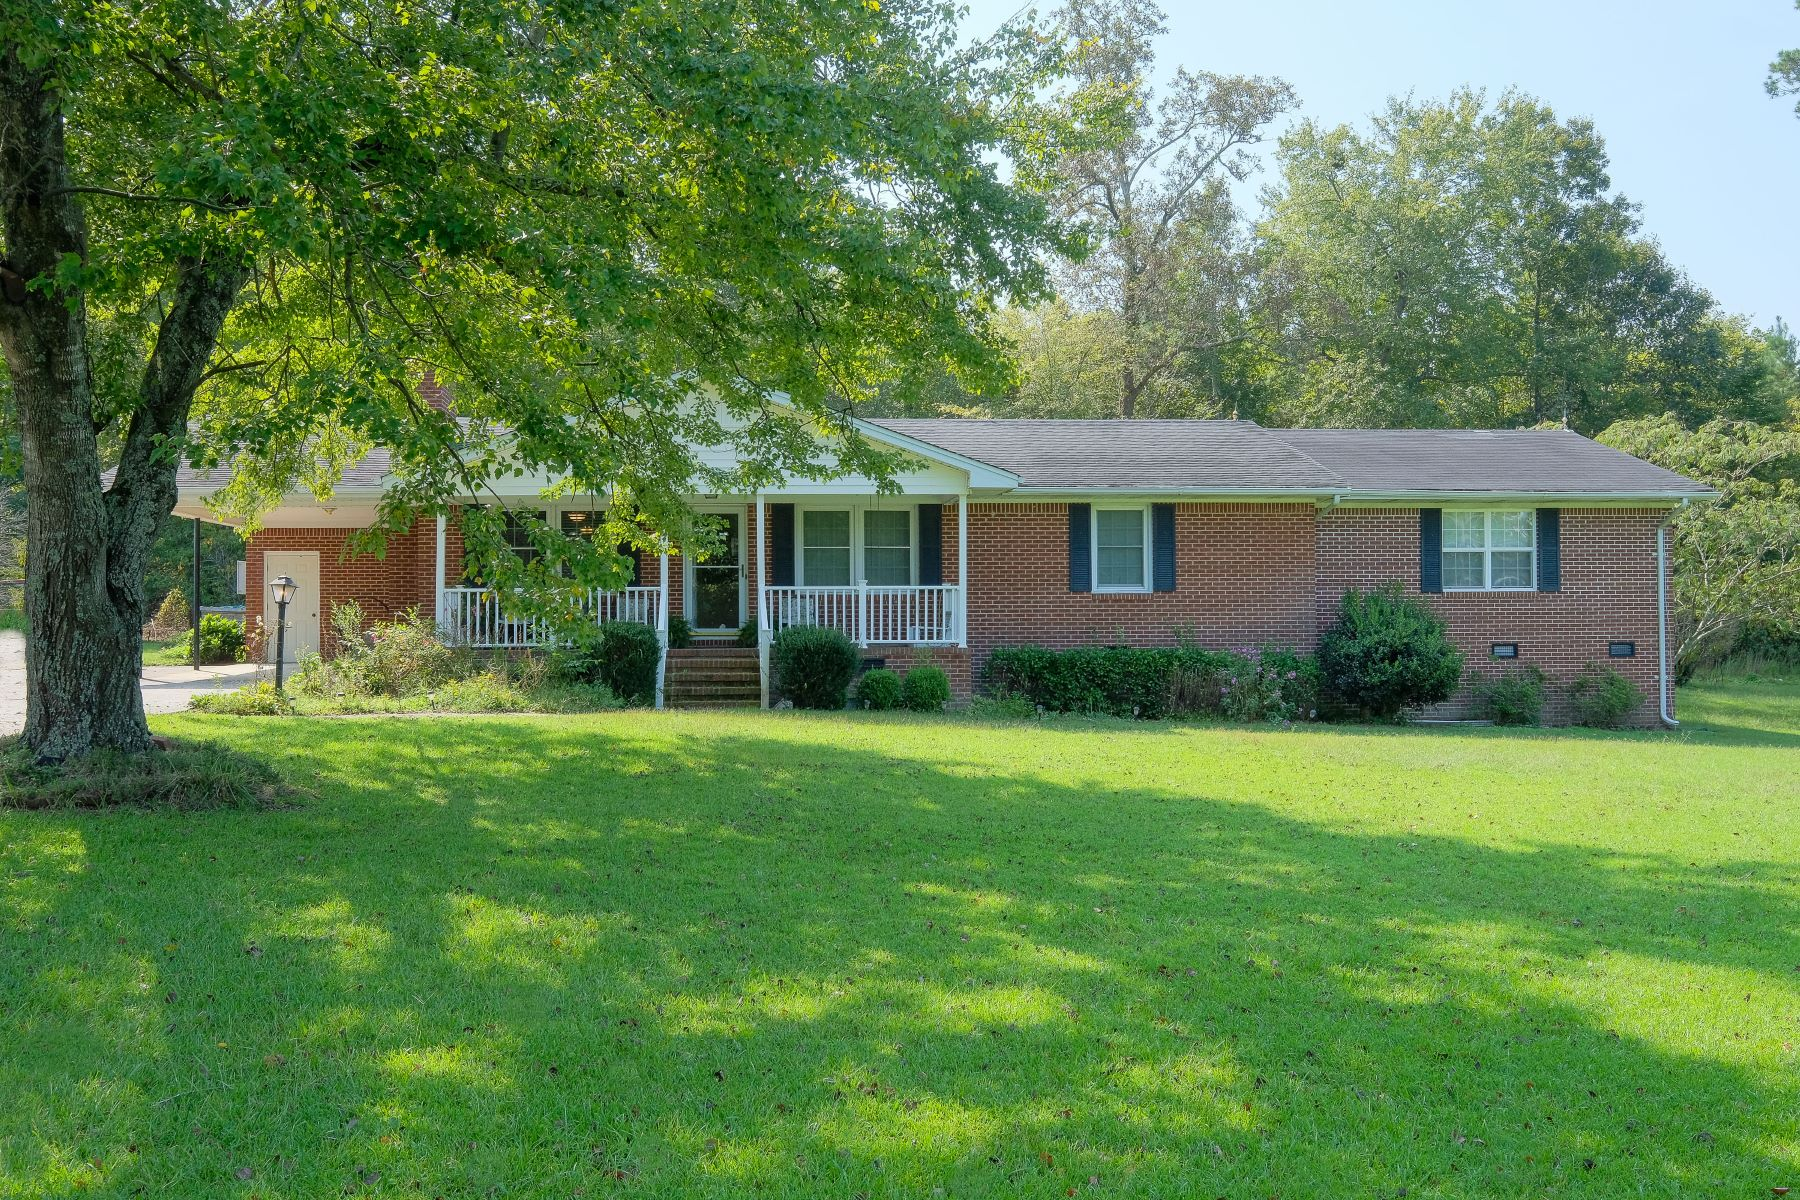 Single Family Homes for Sale at CHARMING BRICK RANCH 2128 N Highway 17 Merry Hill, North Carolina 27957 United States